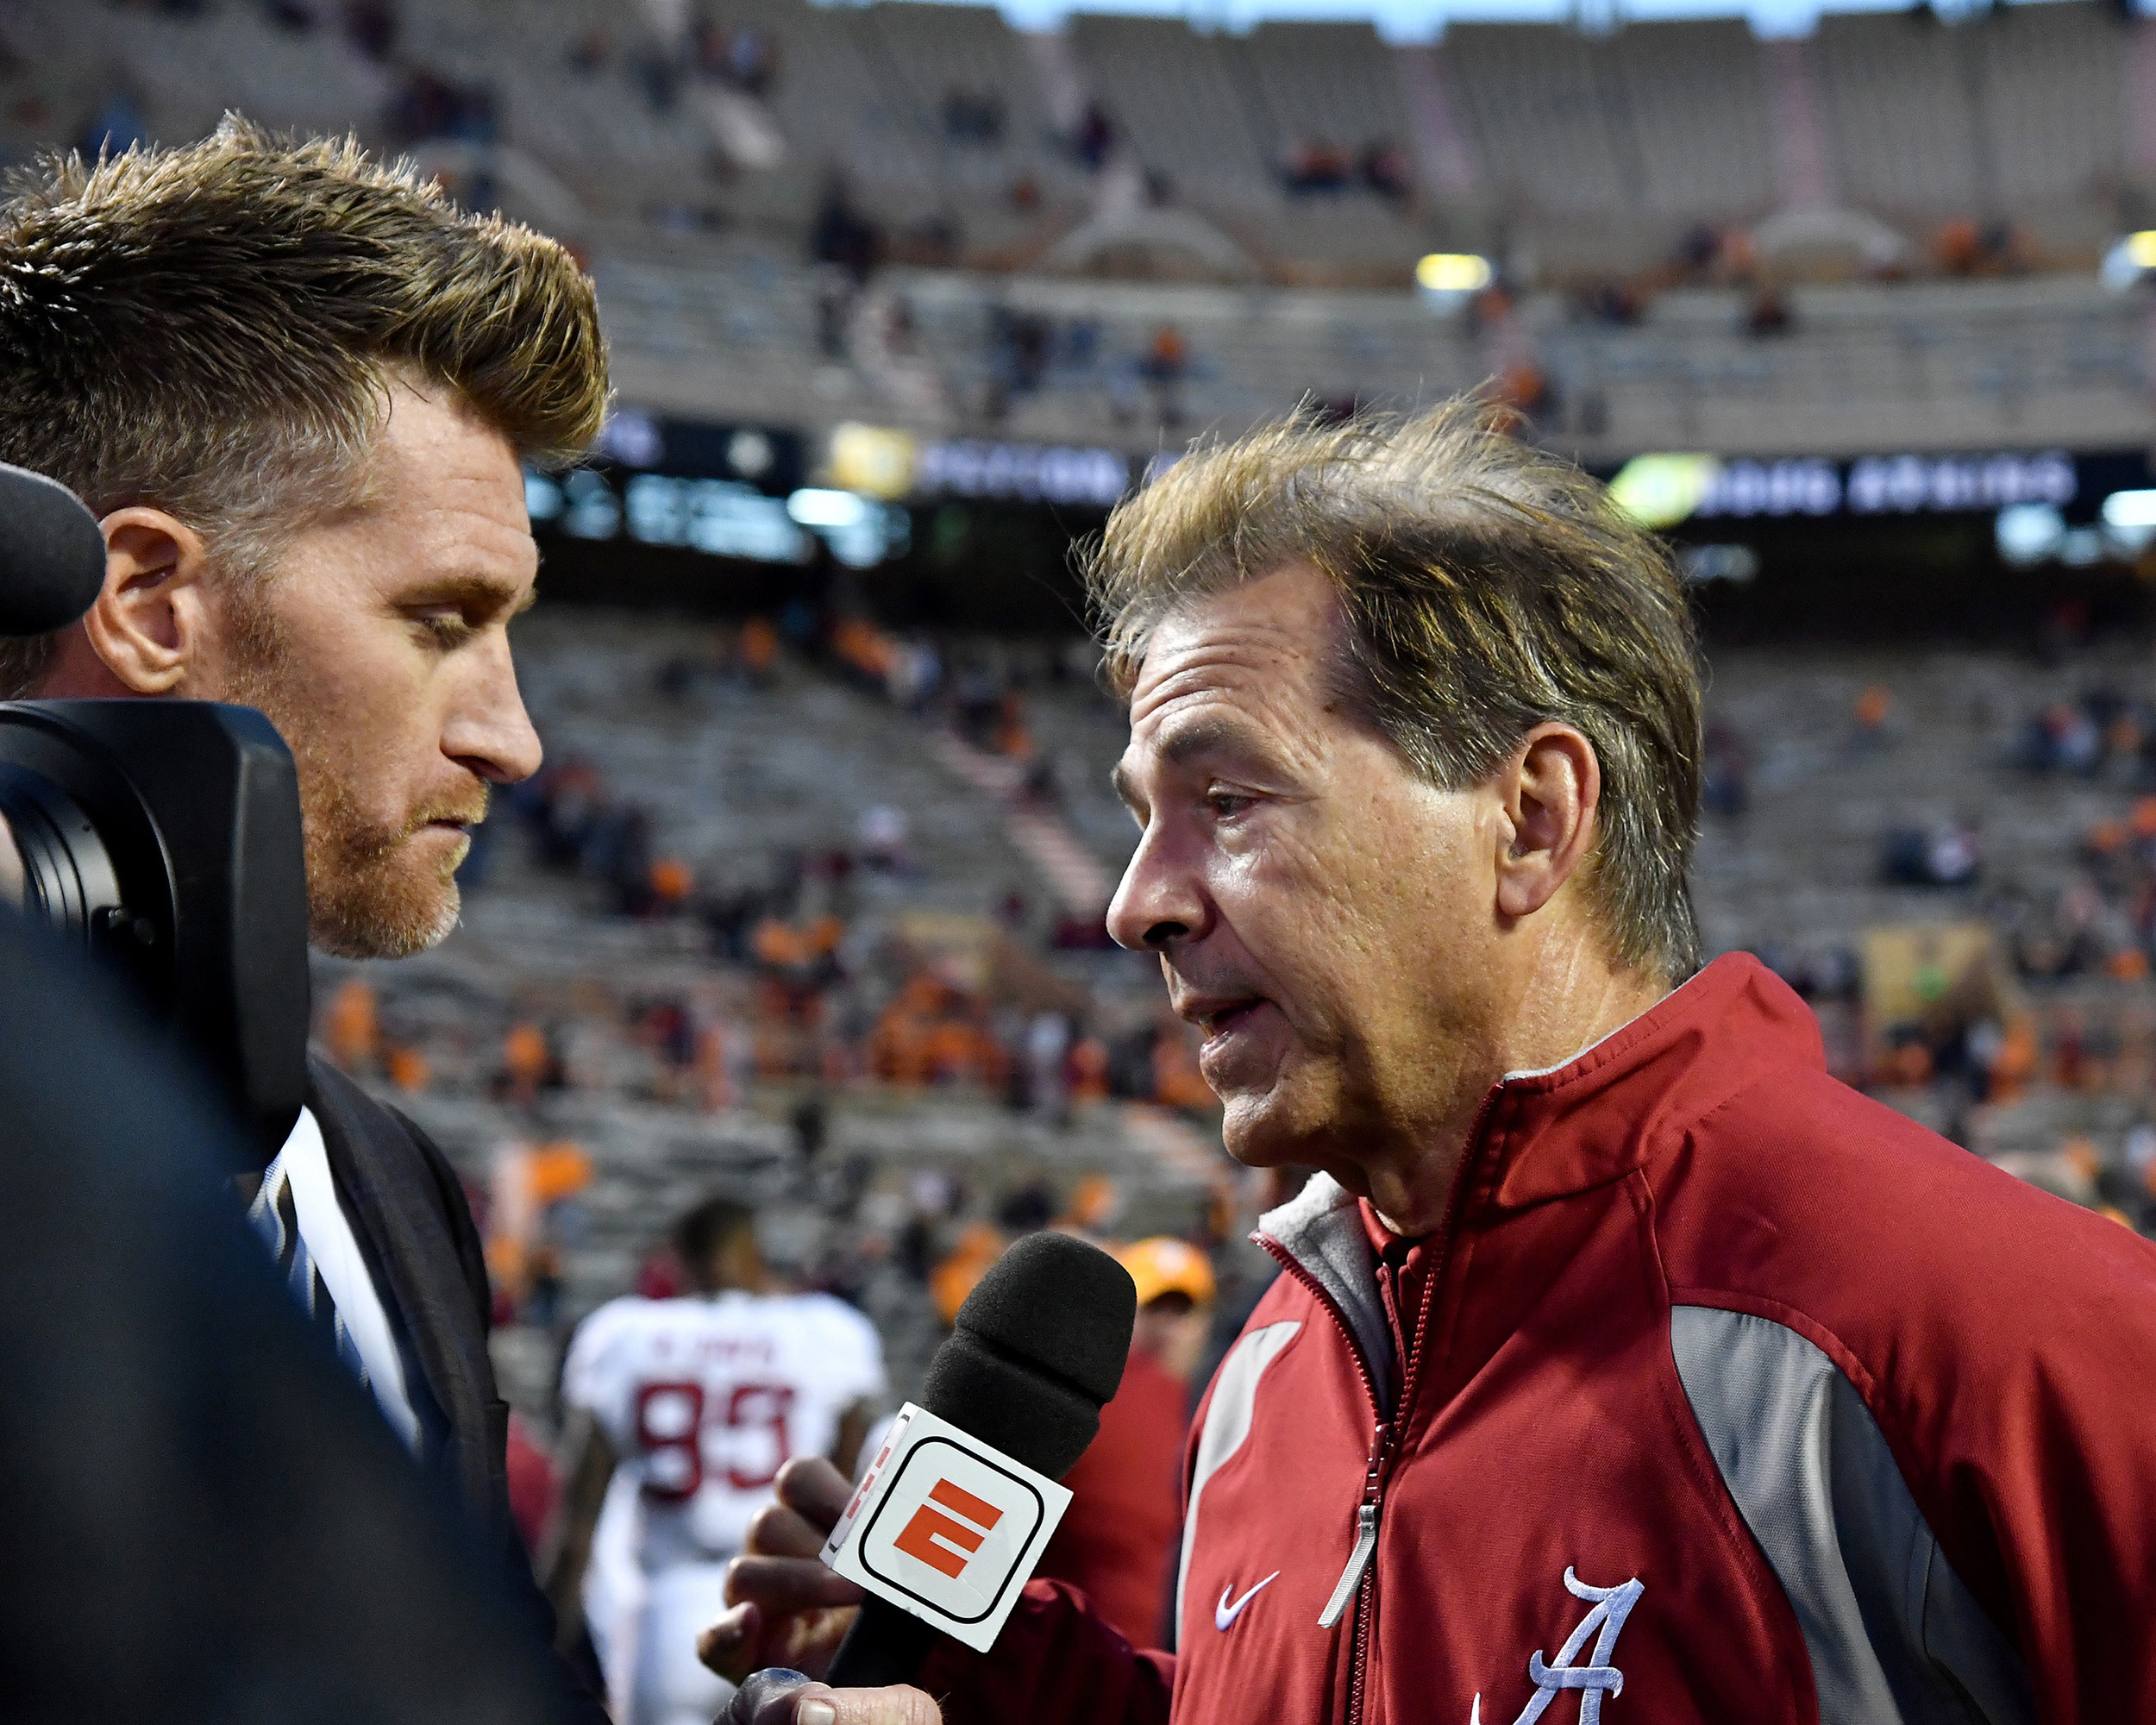 Alabama Crimson Tide head coach Nick Saban is interviewed by ESPN's Marty Smith following Alabama's 58-21 win over the Tennessee Volunteers on Saturday, Oct. 20, 2018, at Neyland Stadium in Knoxville. Tenn. Alabama wins 58-21. (Photo by Lee Walls)